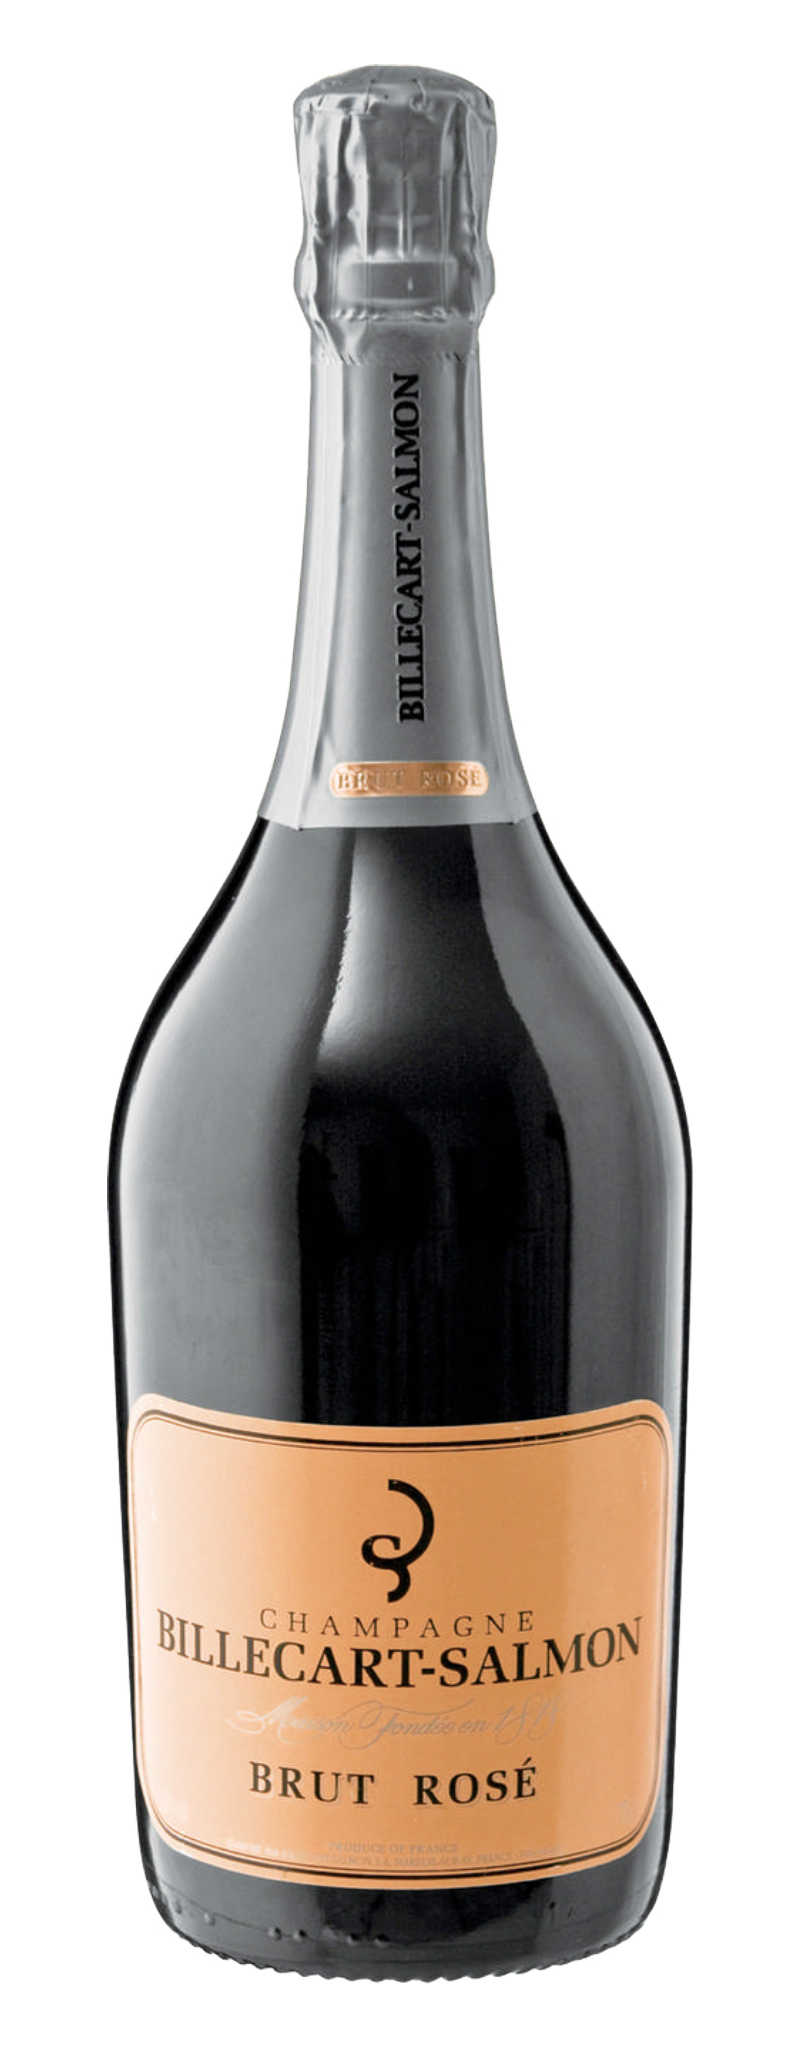 Billecart-Salmon Brut Rose 75cl  - 750ml